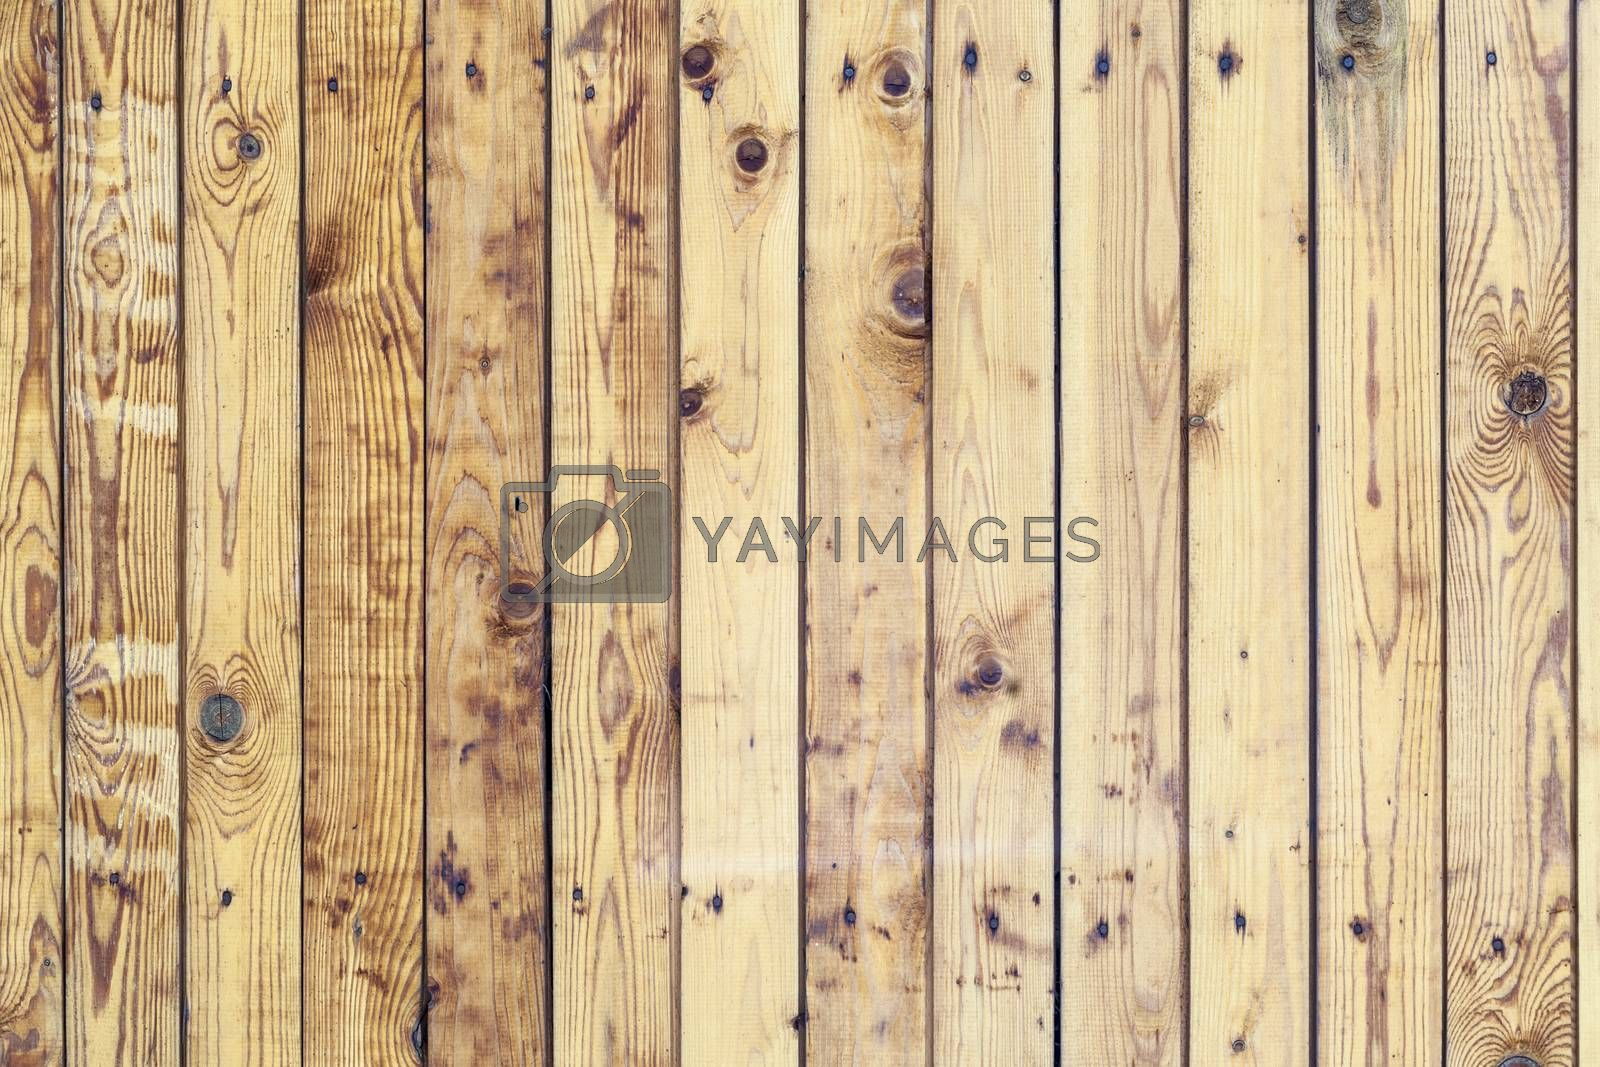 Royalty free image of Natural Dark Wooden Background by H2Oshka